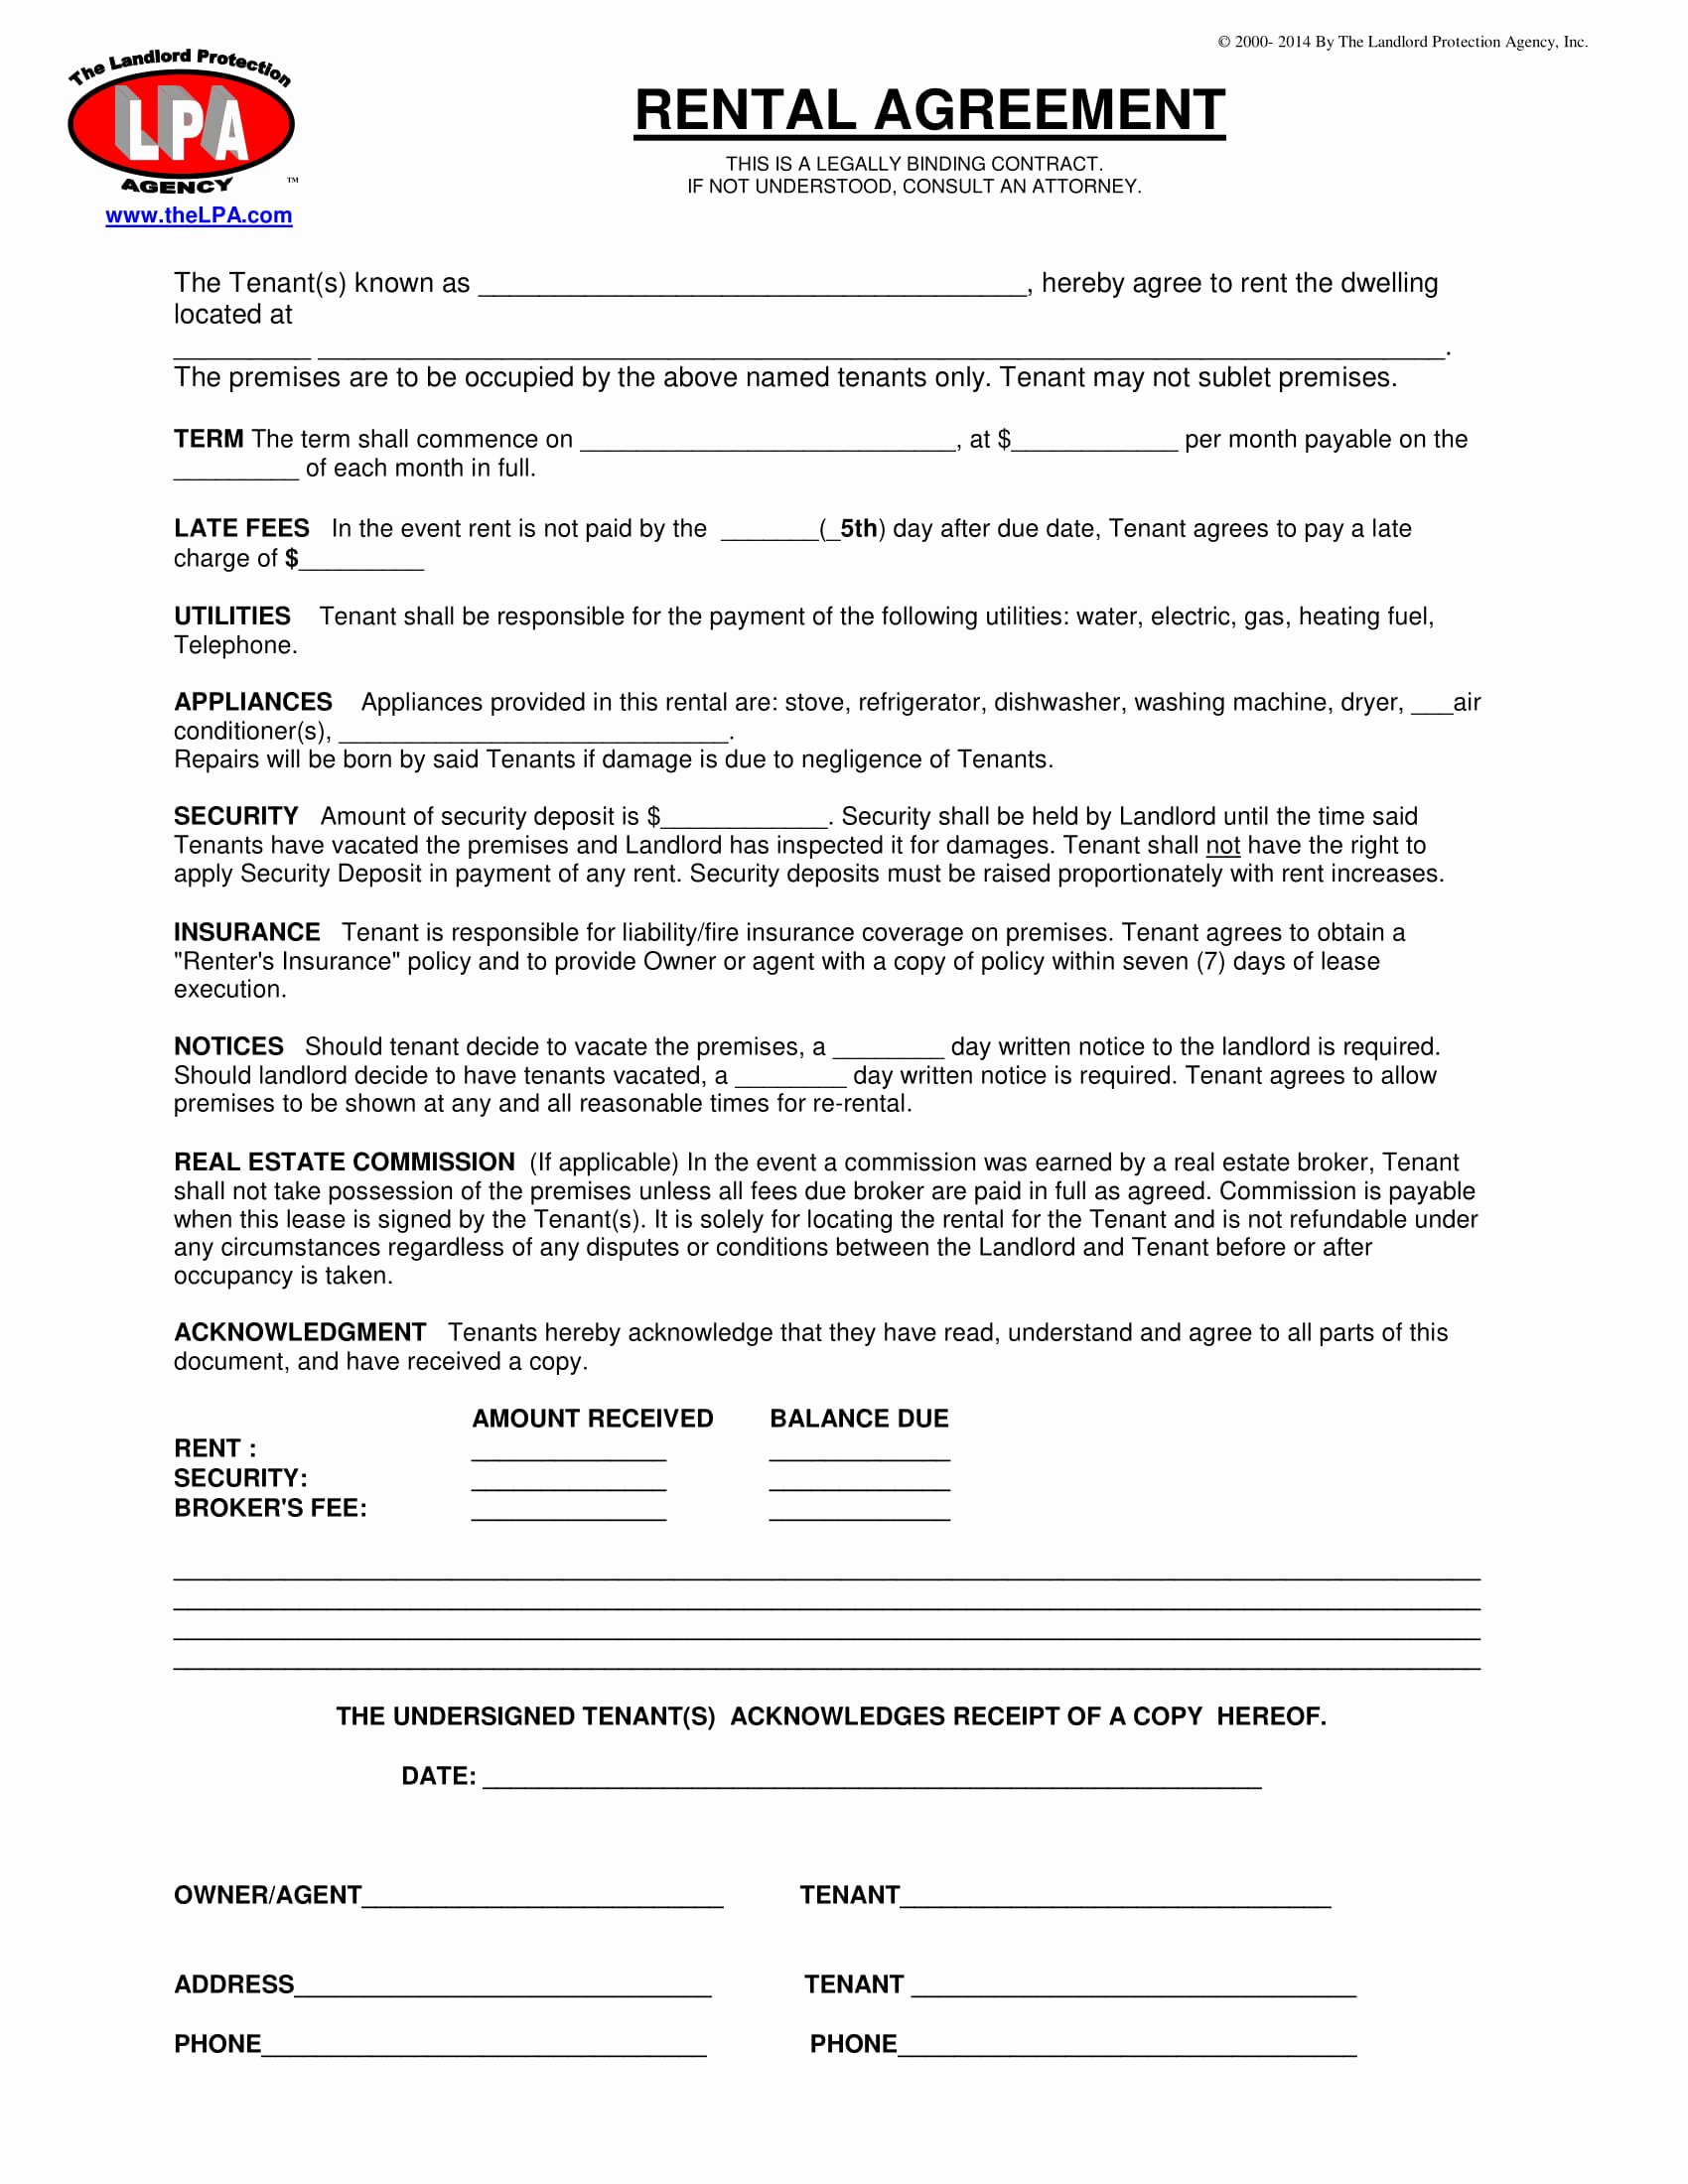 Salary Agreement Letter Beautiful 9 Business Agreement Letter Examples Pdf Doc